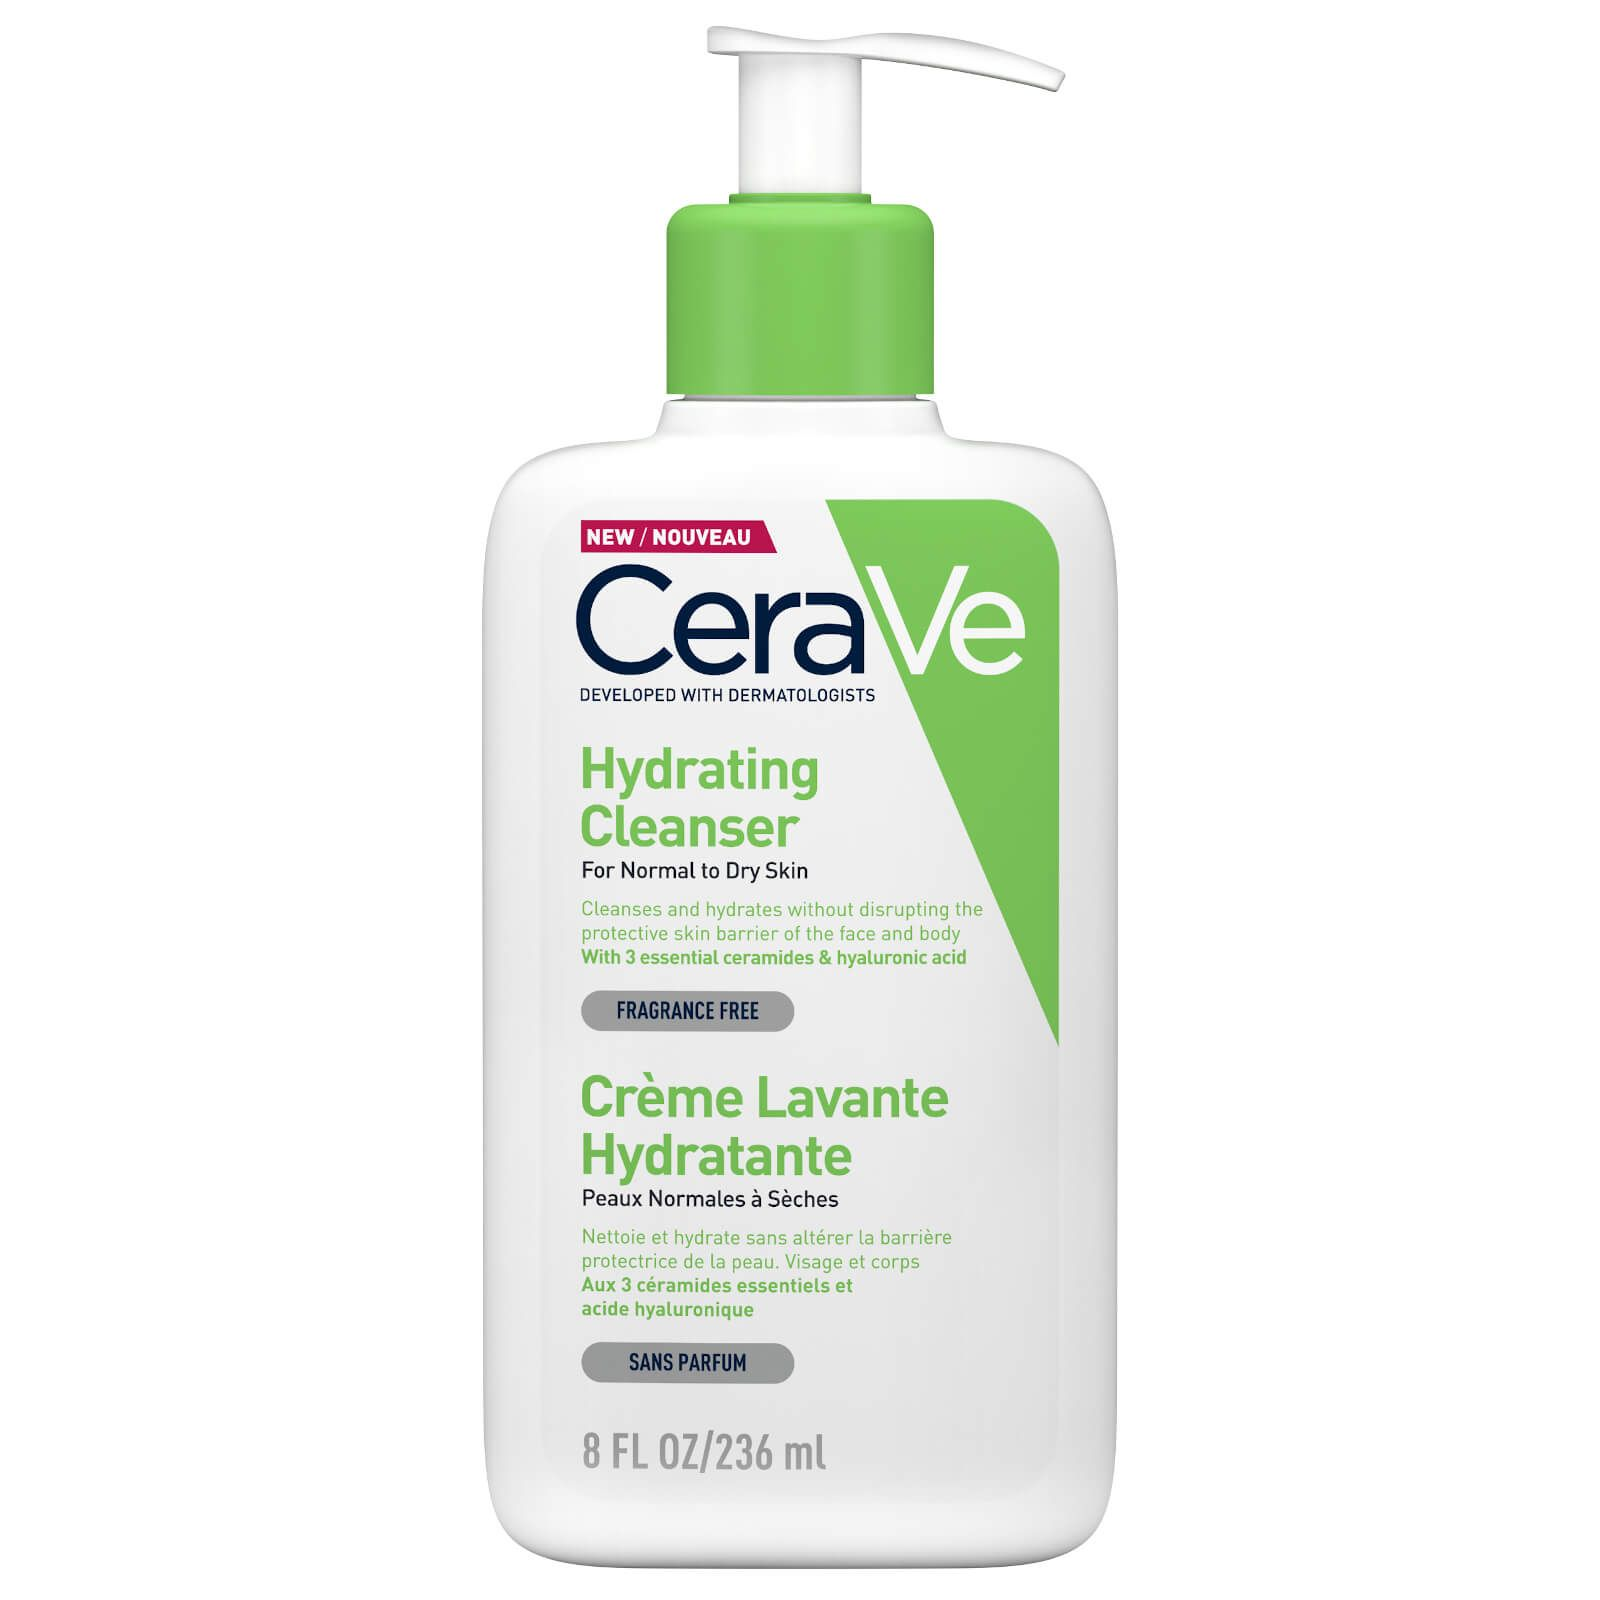 My Celebrity Life – CeraVe Hydrating Cleanser for Normal to Dry Skin